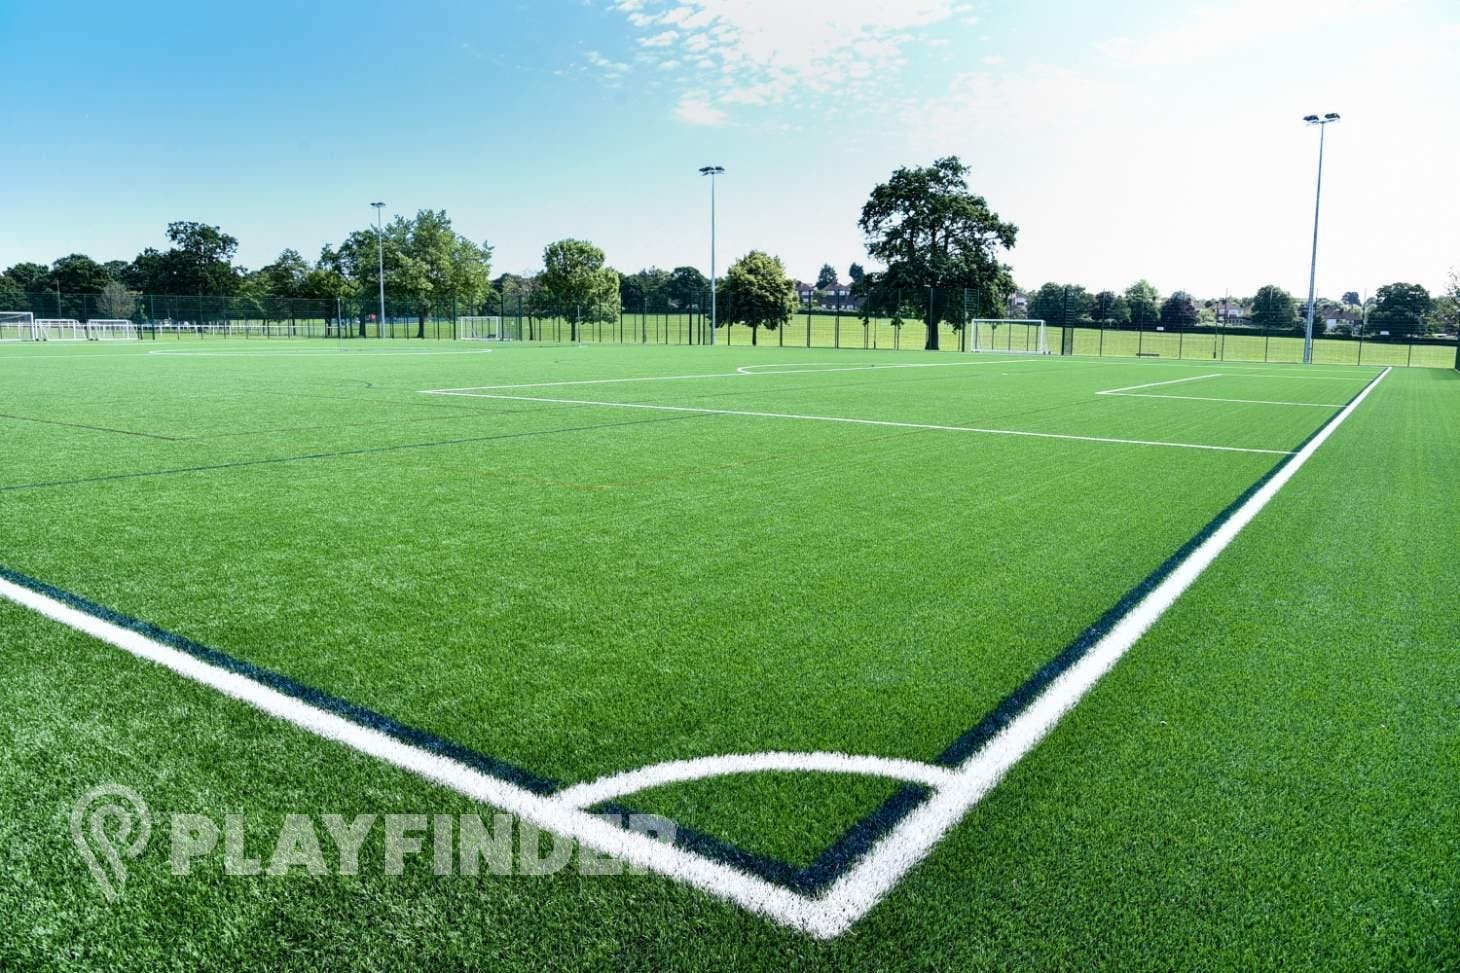 Barnet Lane 3G Pitch 11 a side | 3G Astroturf football pitch